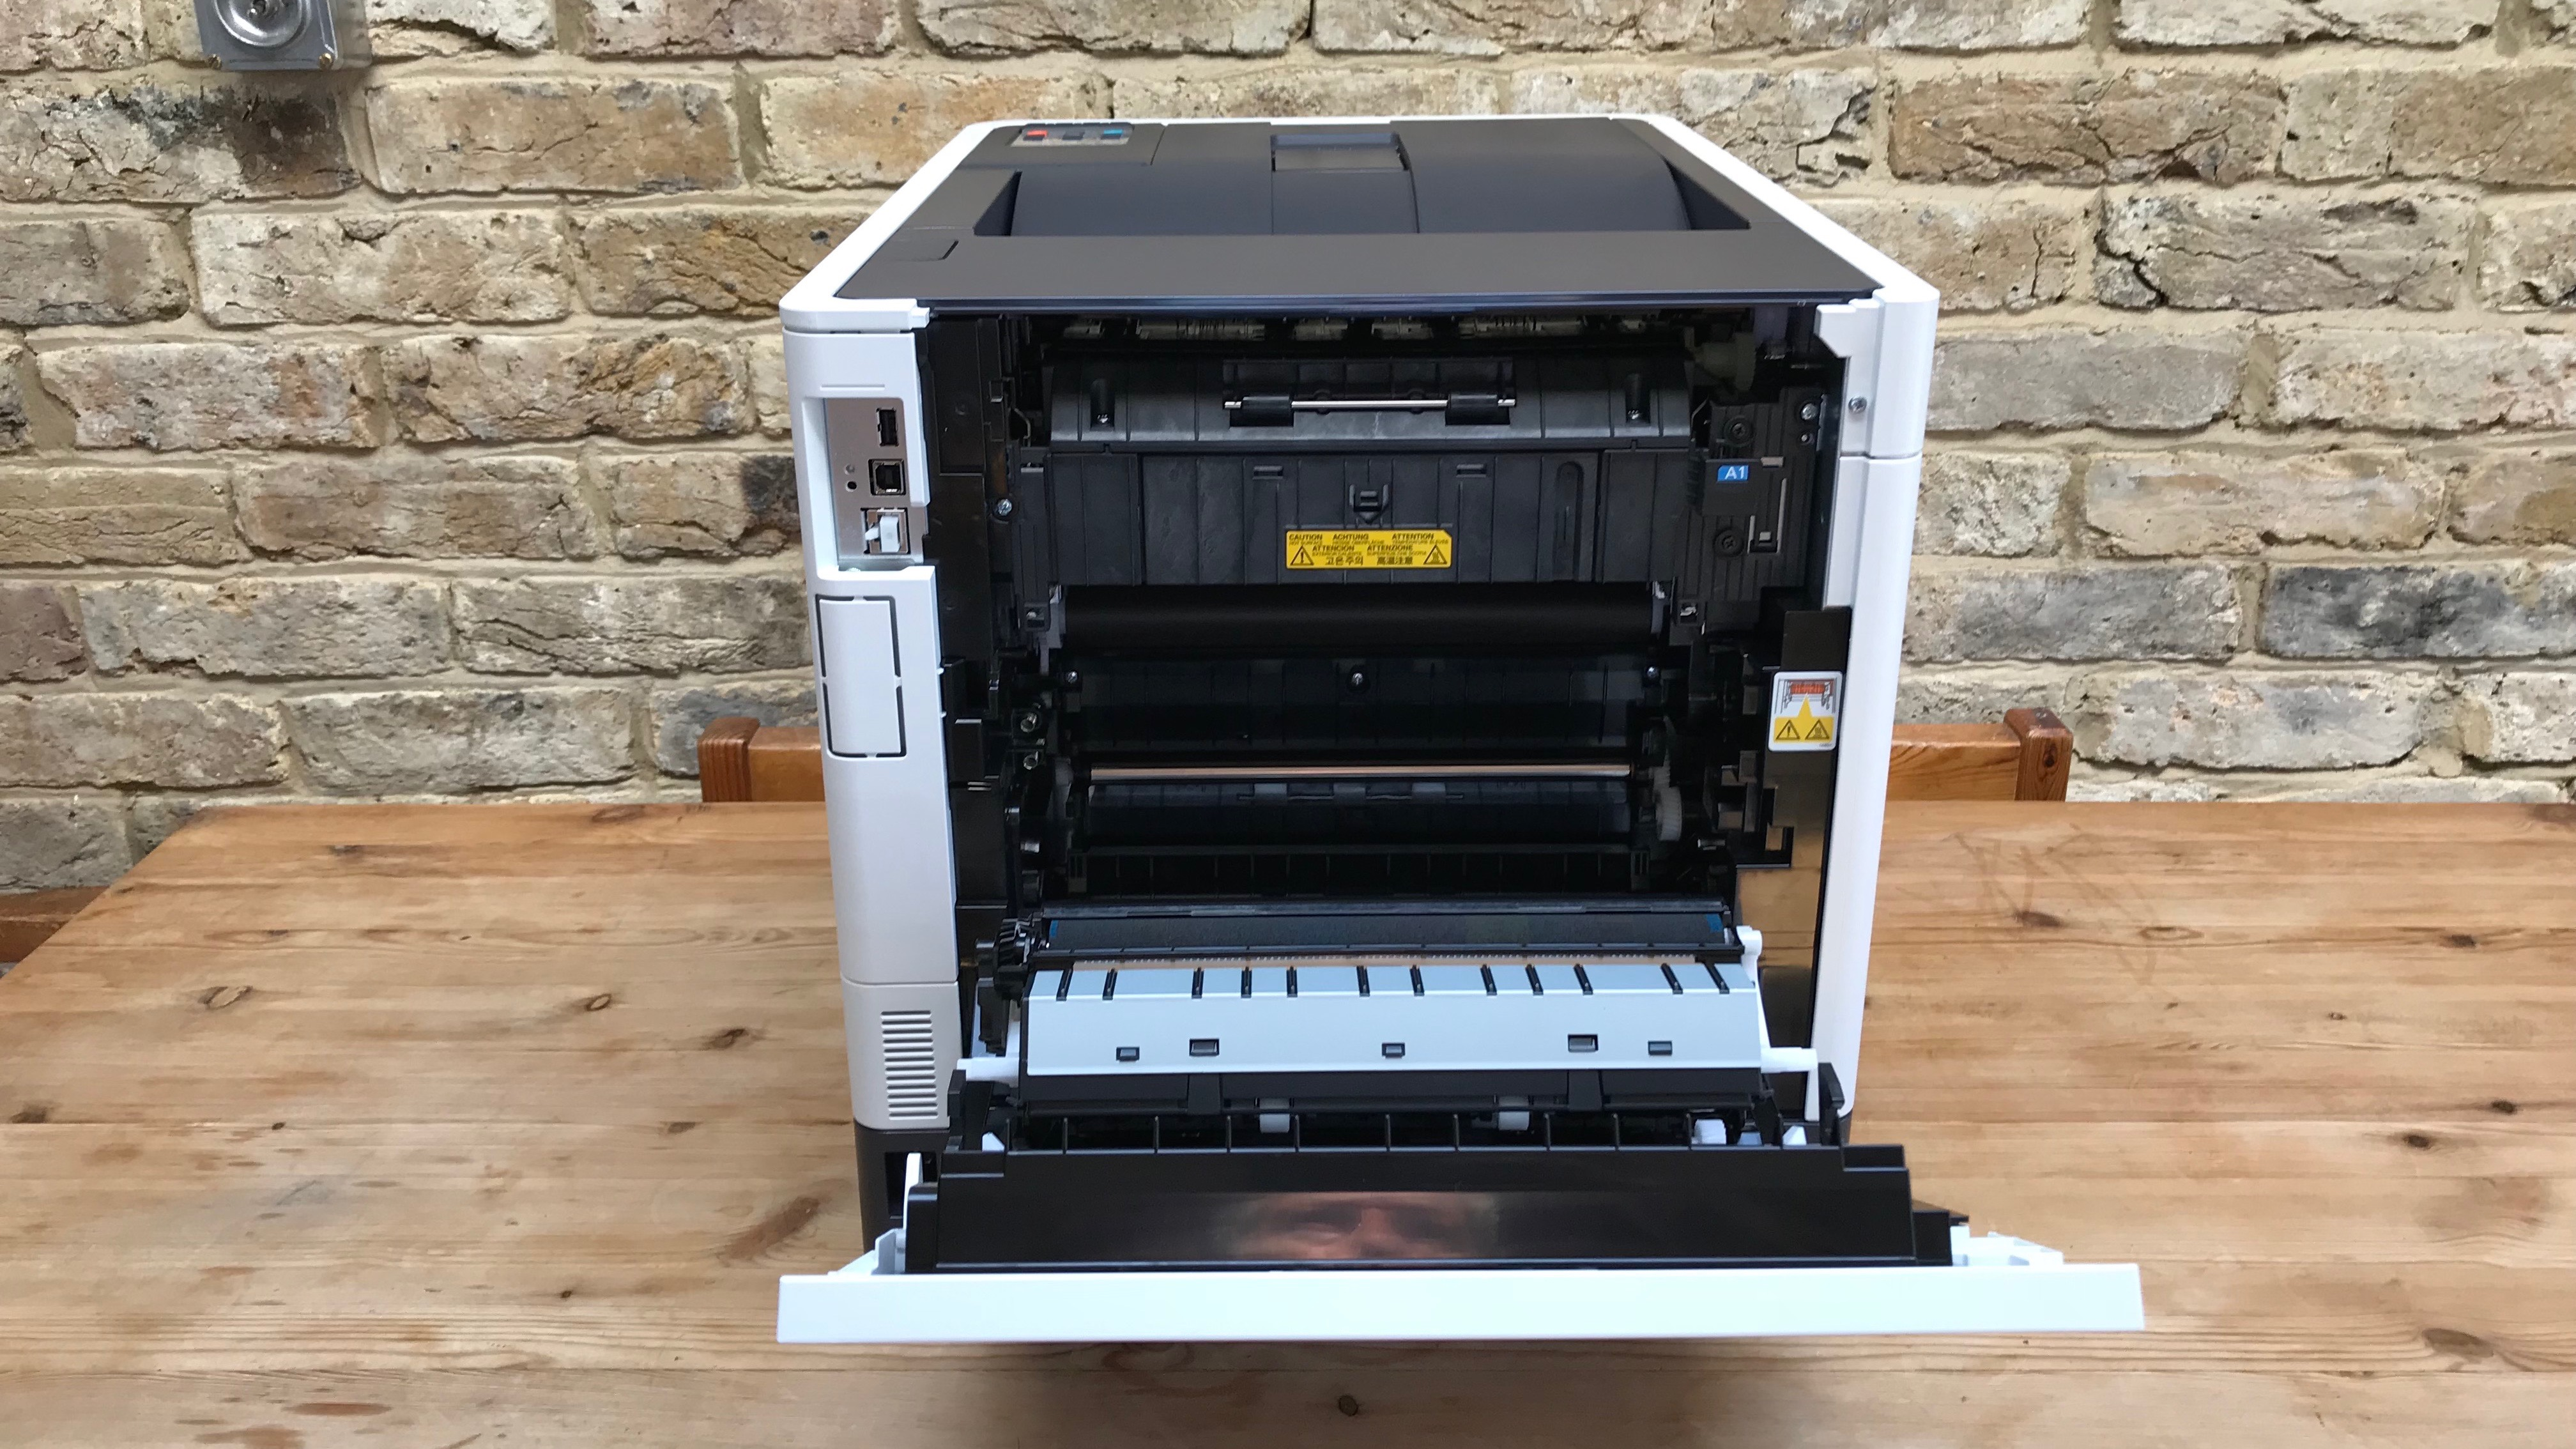 Printer with front flap open